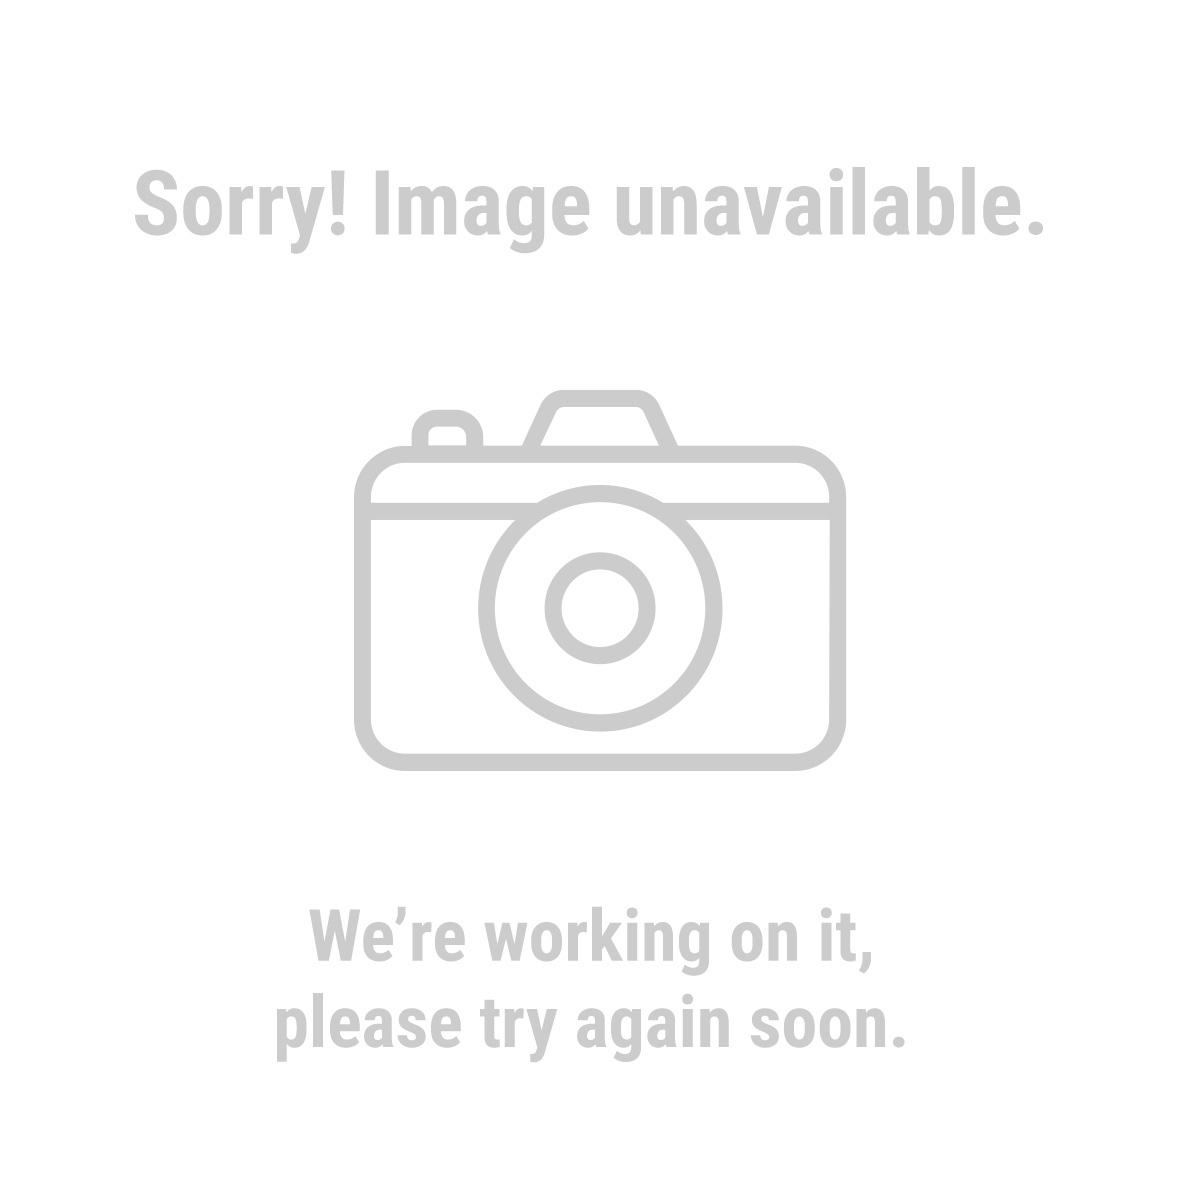 Haul-Master 38137 Steel Mesh Deck Wagon